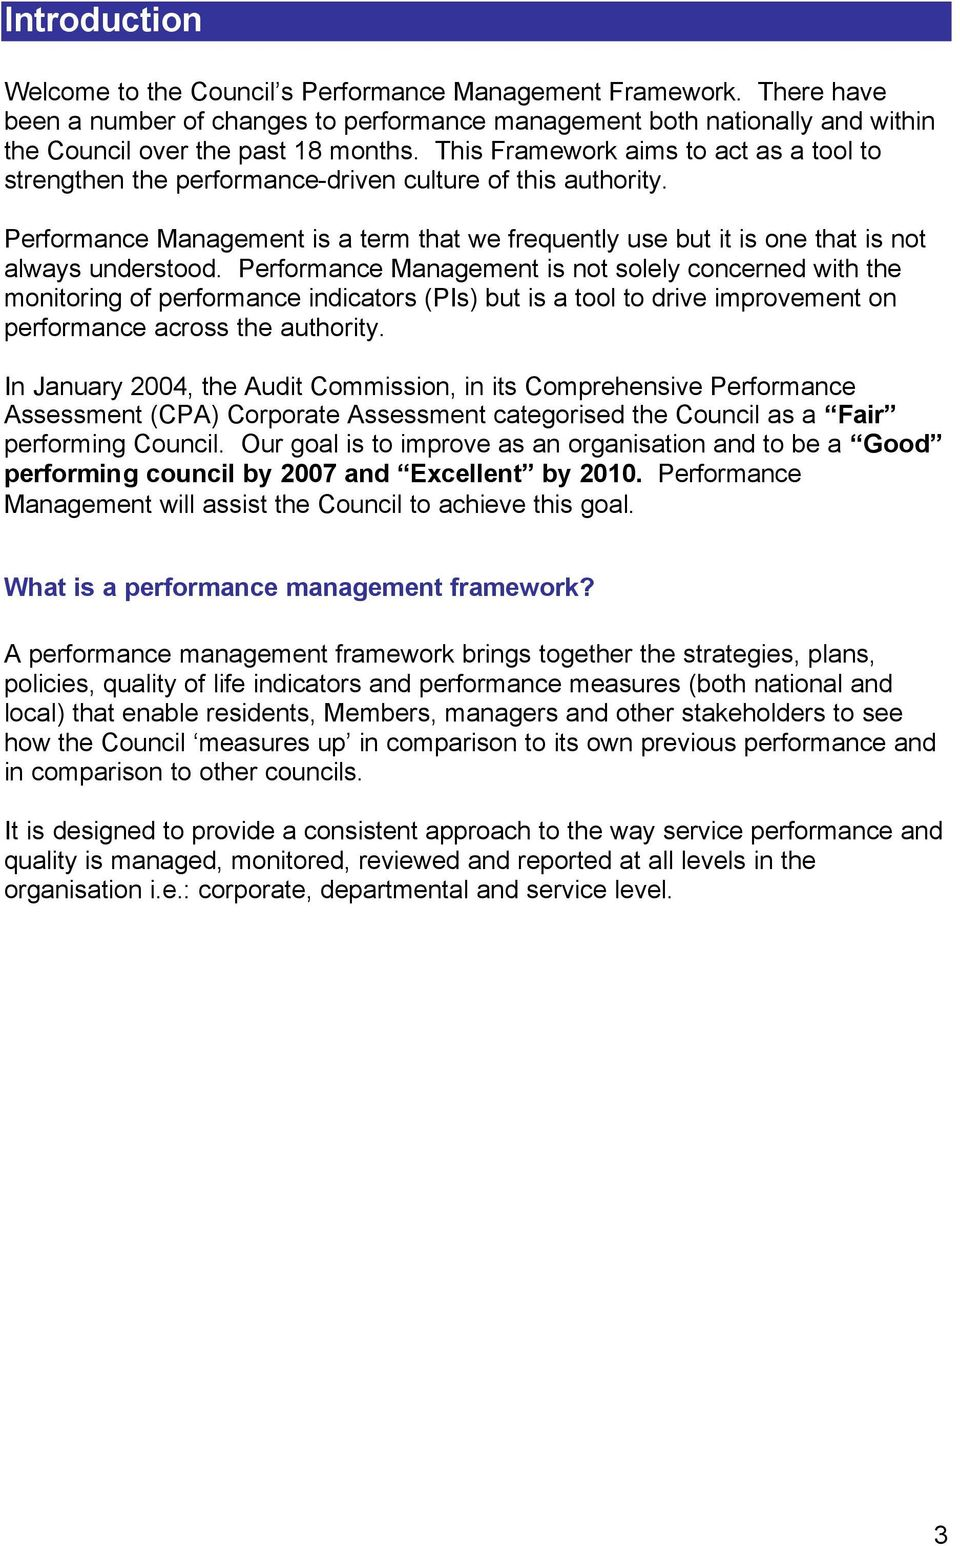 Performance Management is a term that we frequently use but it is one that is not always understood.